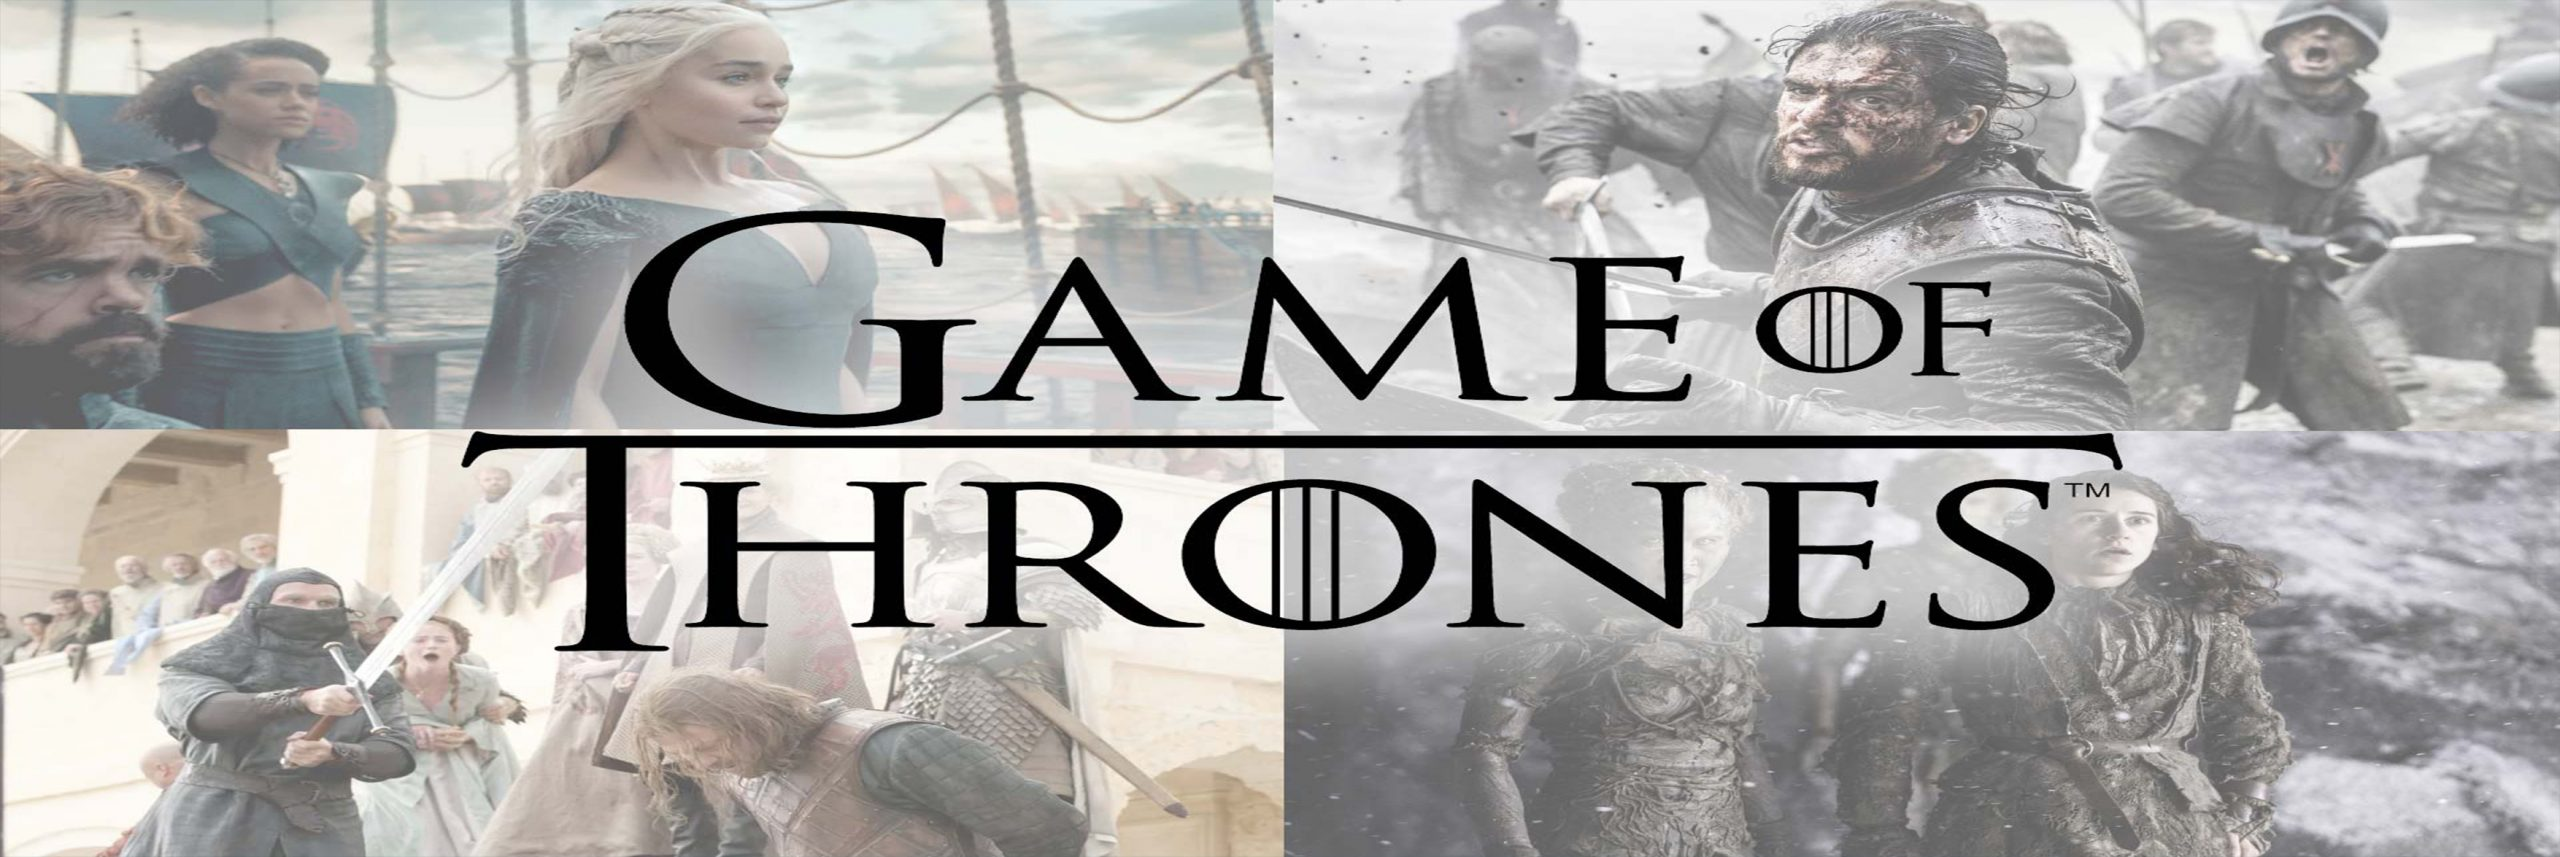 بازی تاج و تخت – Game Of Thrones